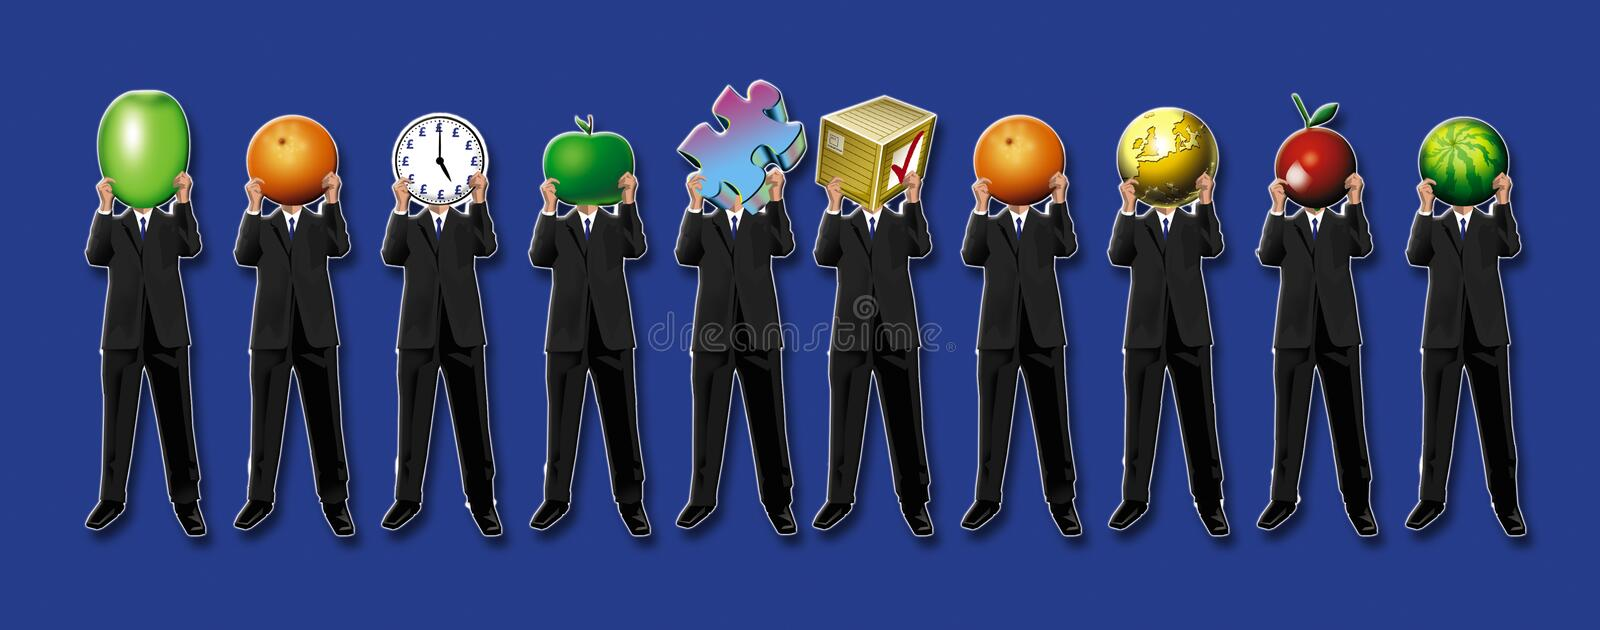 Business men royalty free illustration